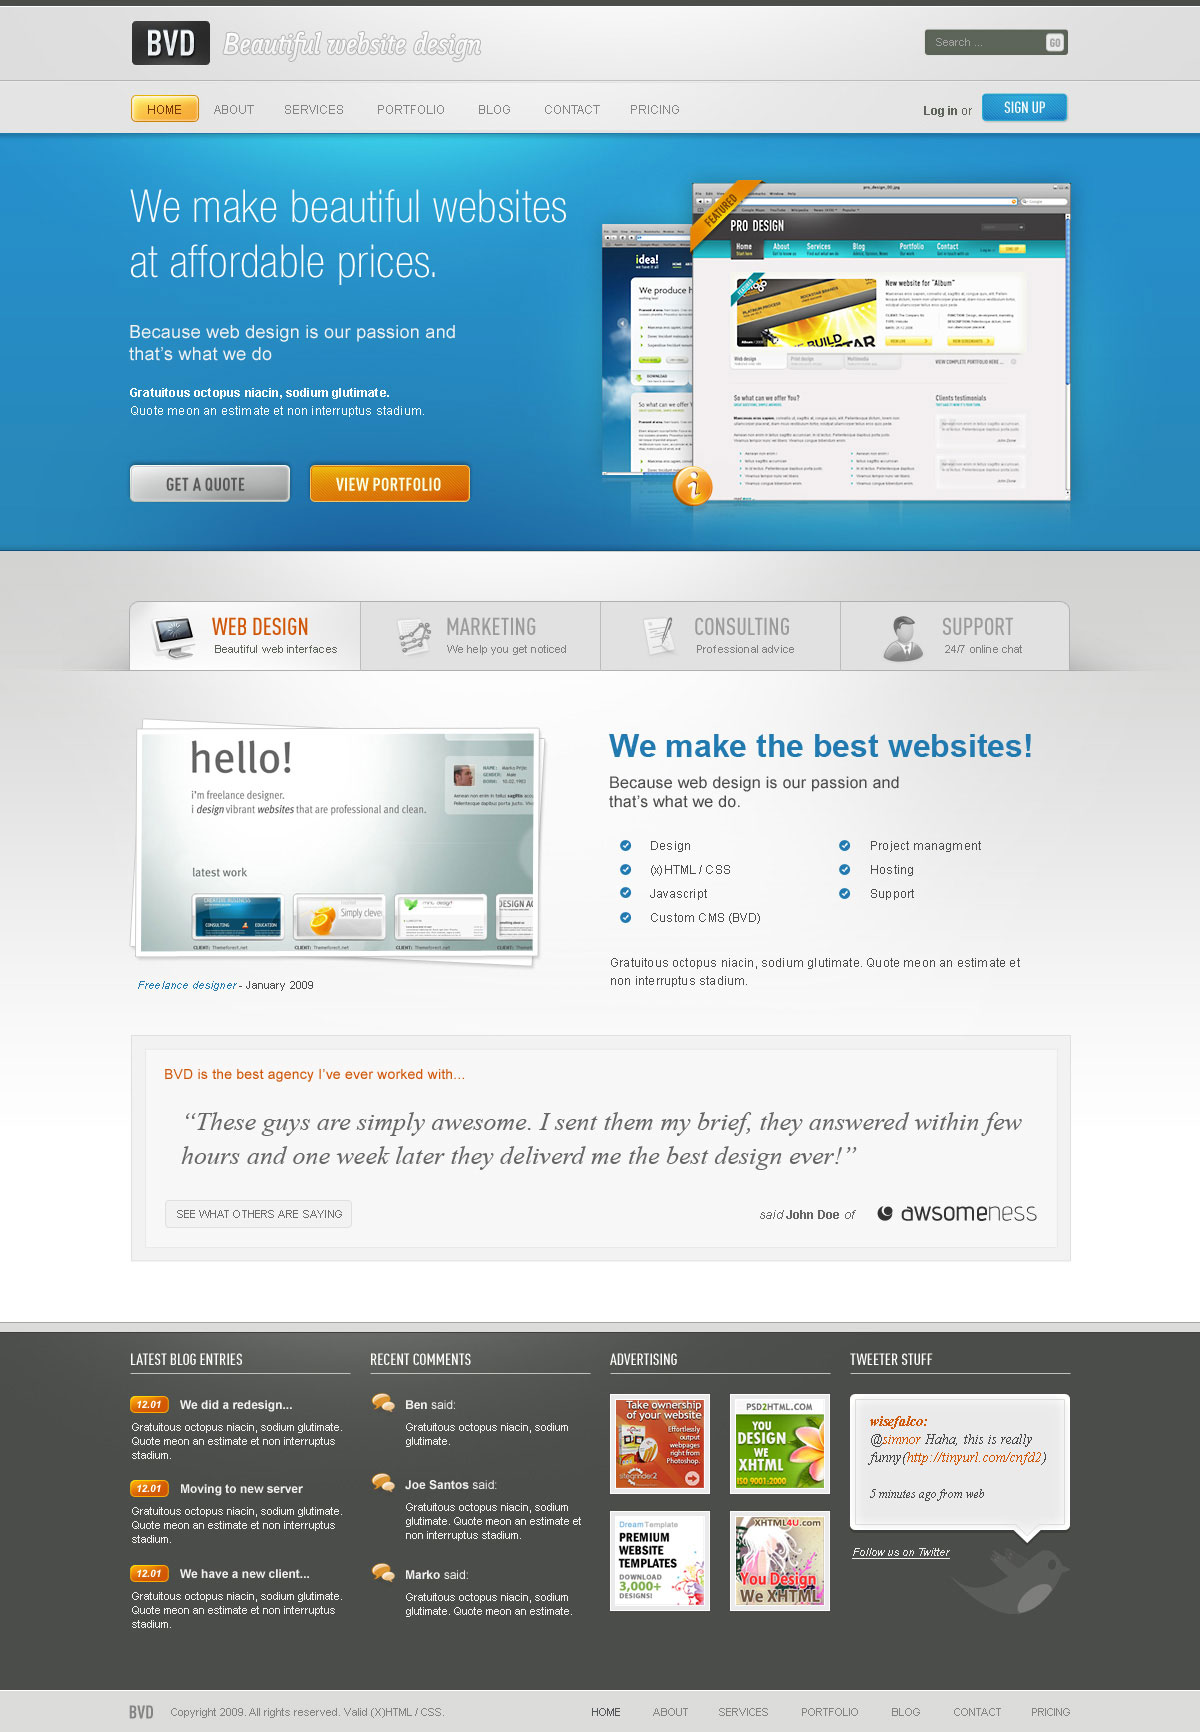 Bvd beautiful website design wordpress by segen themeforest bvd beautiful website design wordpress cheaphphosting Images